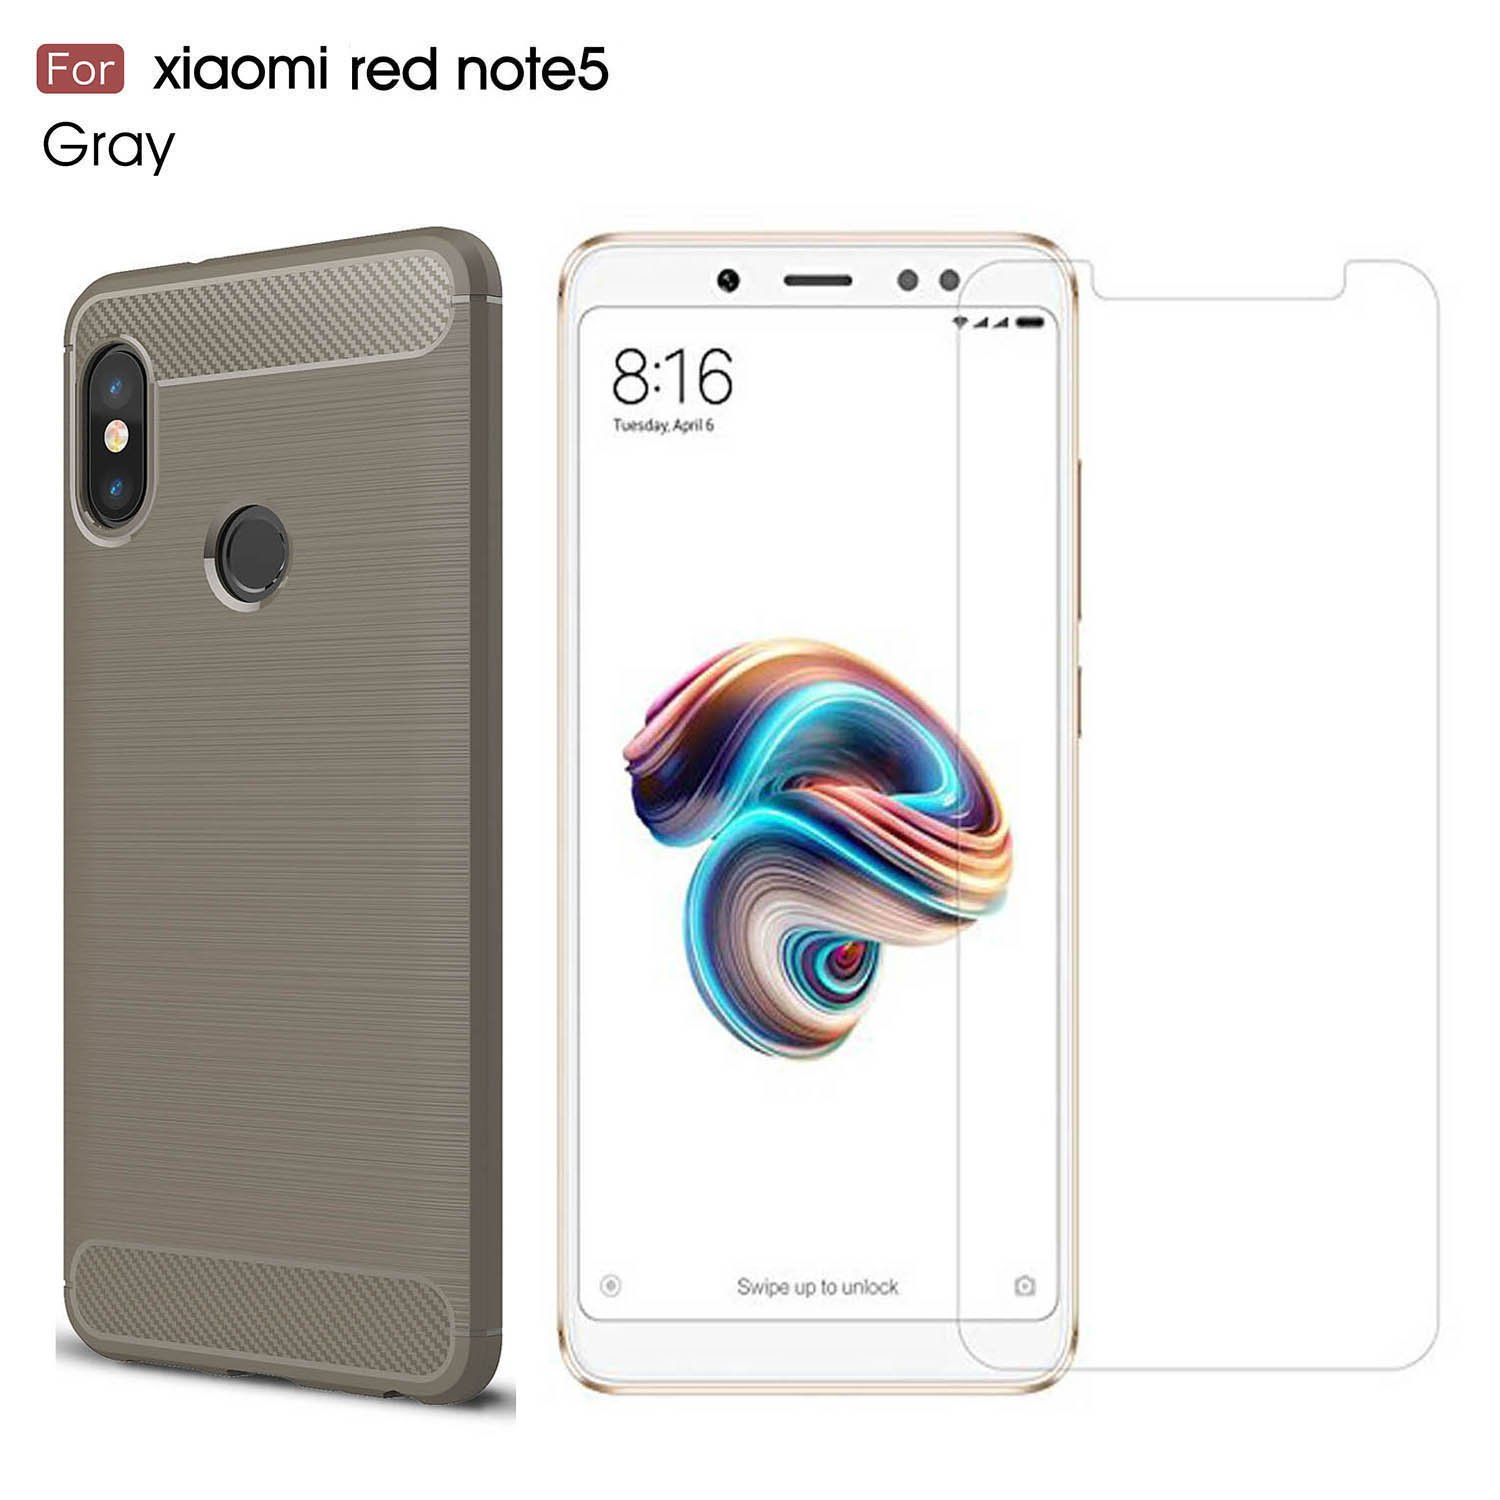 Xiaomi Redmi Note 5 case/Redmi Note 5 Pro case,with Xiaomi Redmi Note 5/Redmi Note 5 Pro screen protector. MYLB (2 in 1)[Scratch Resistant Anti-fall] ...